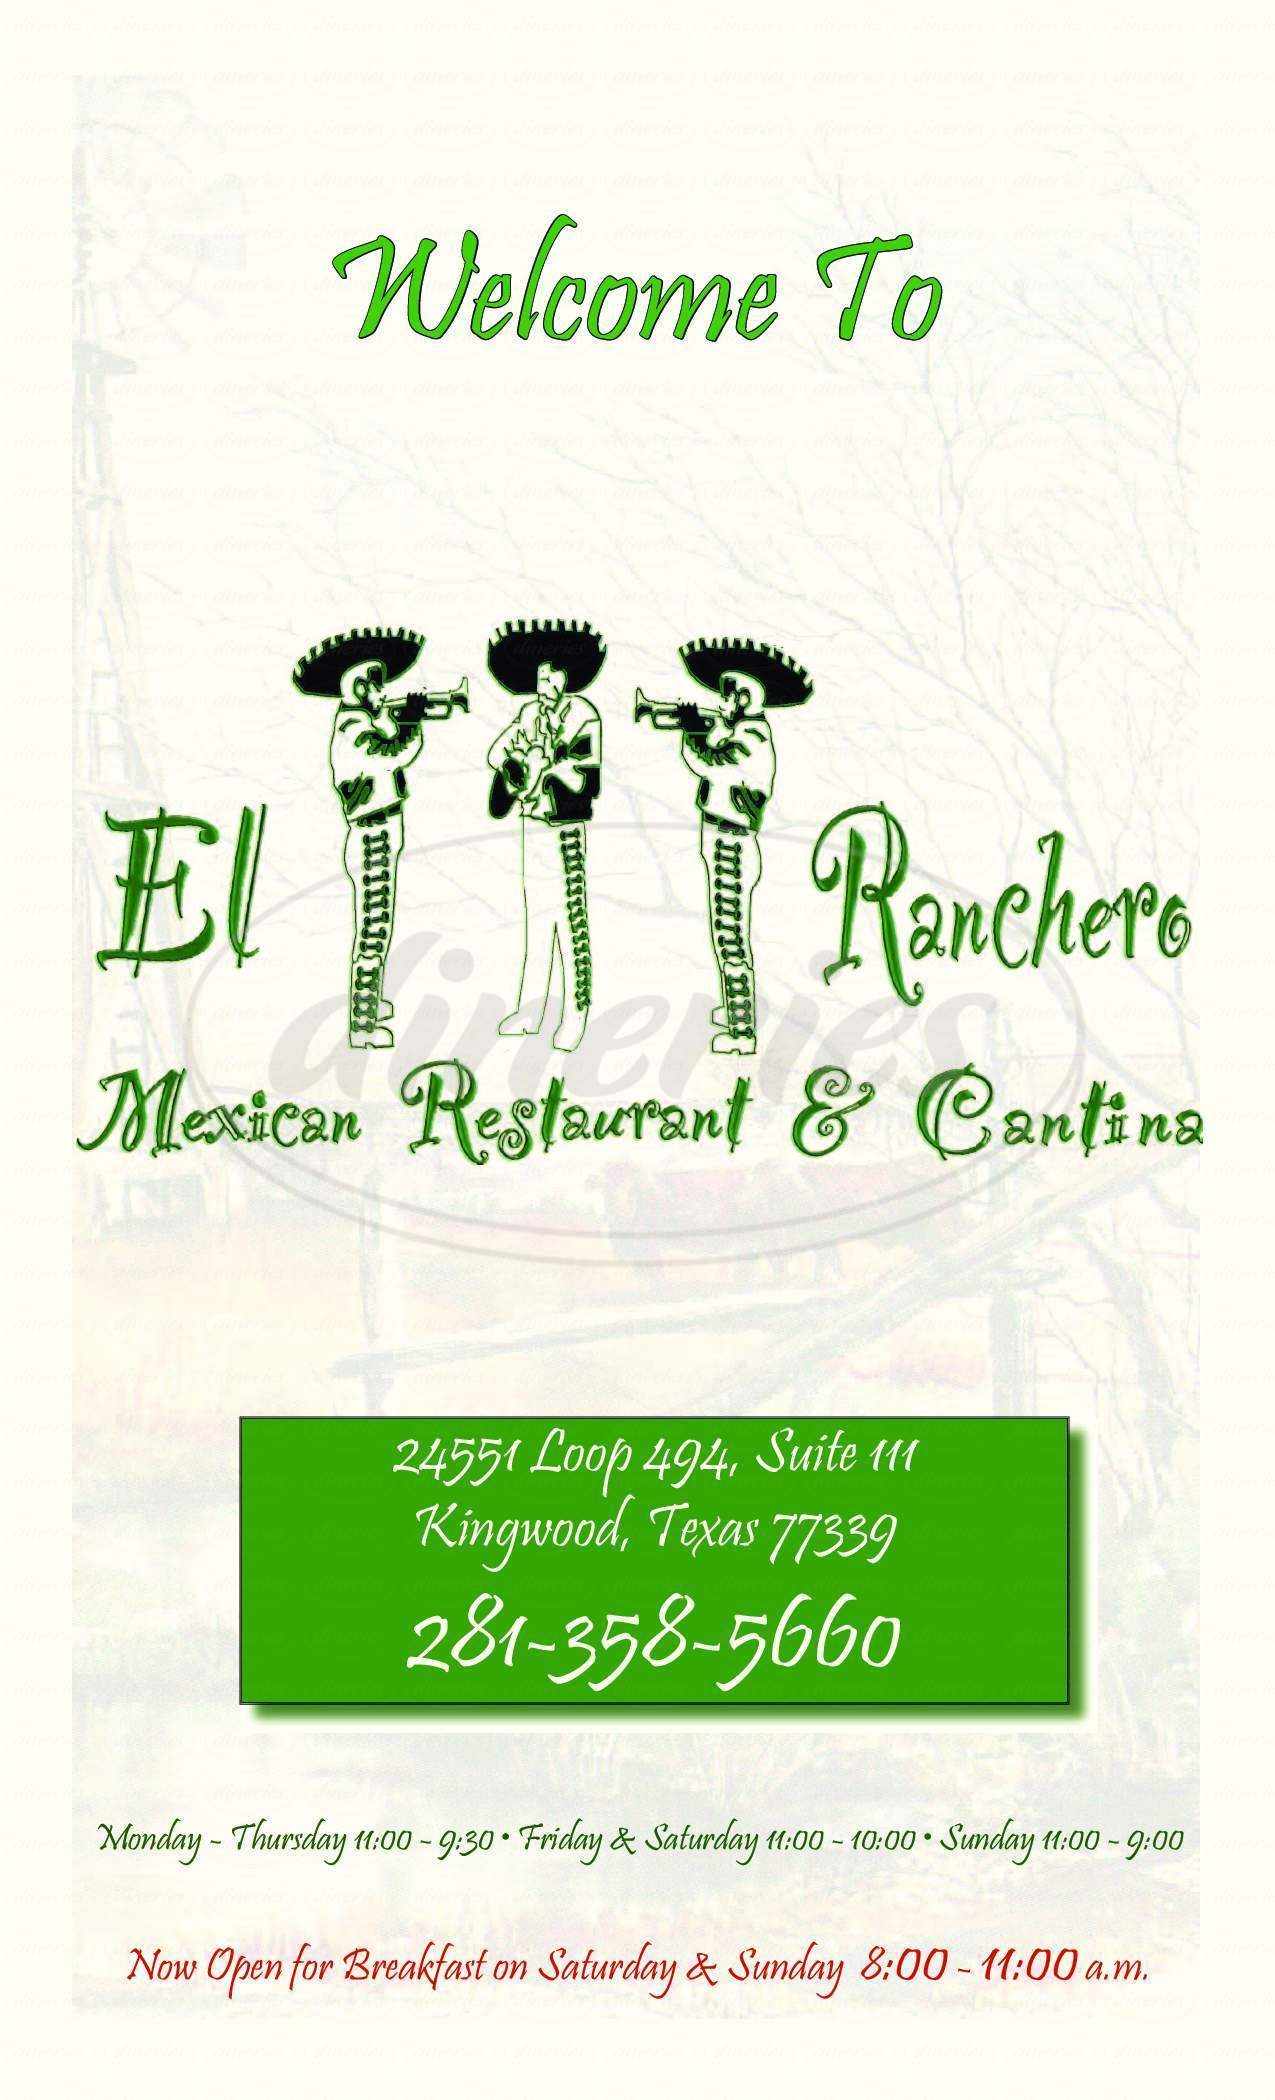 menu for El Ranchero Mexican Restaurant